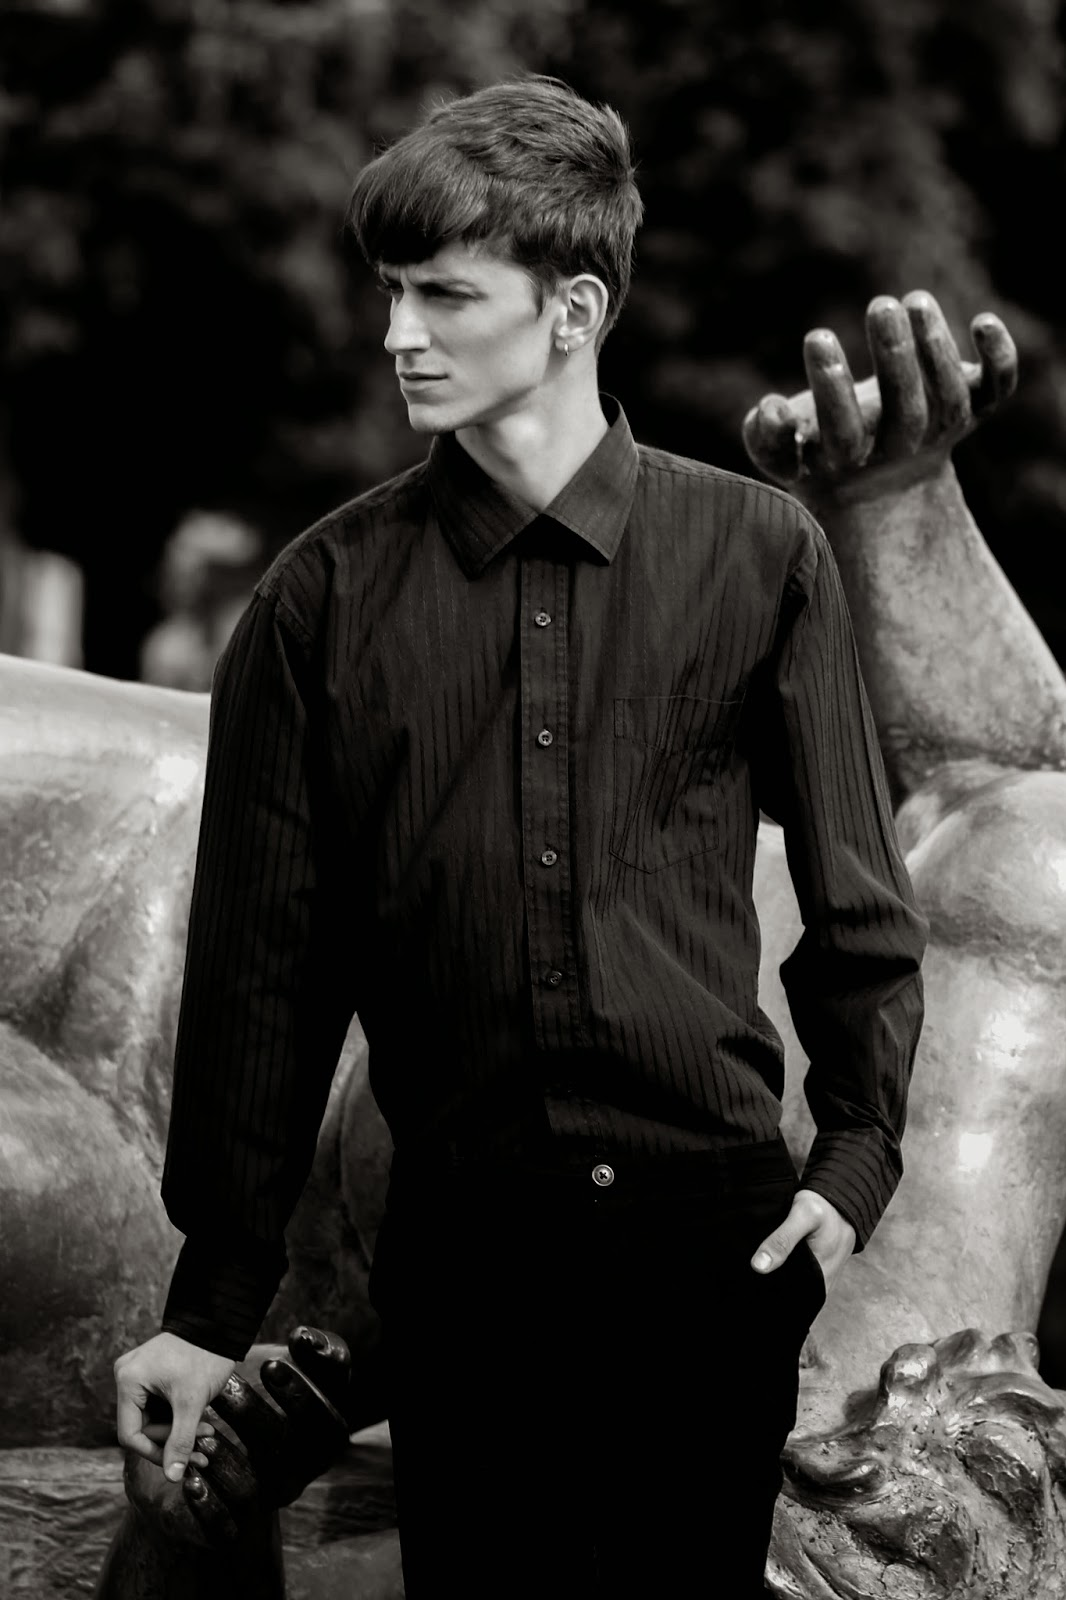 NICHOLAS C. (MAJOR MODEL MANAGEMENT) 4 NICHOLAS C. (MAJOR MODEL MANAGEMENT)